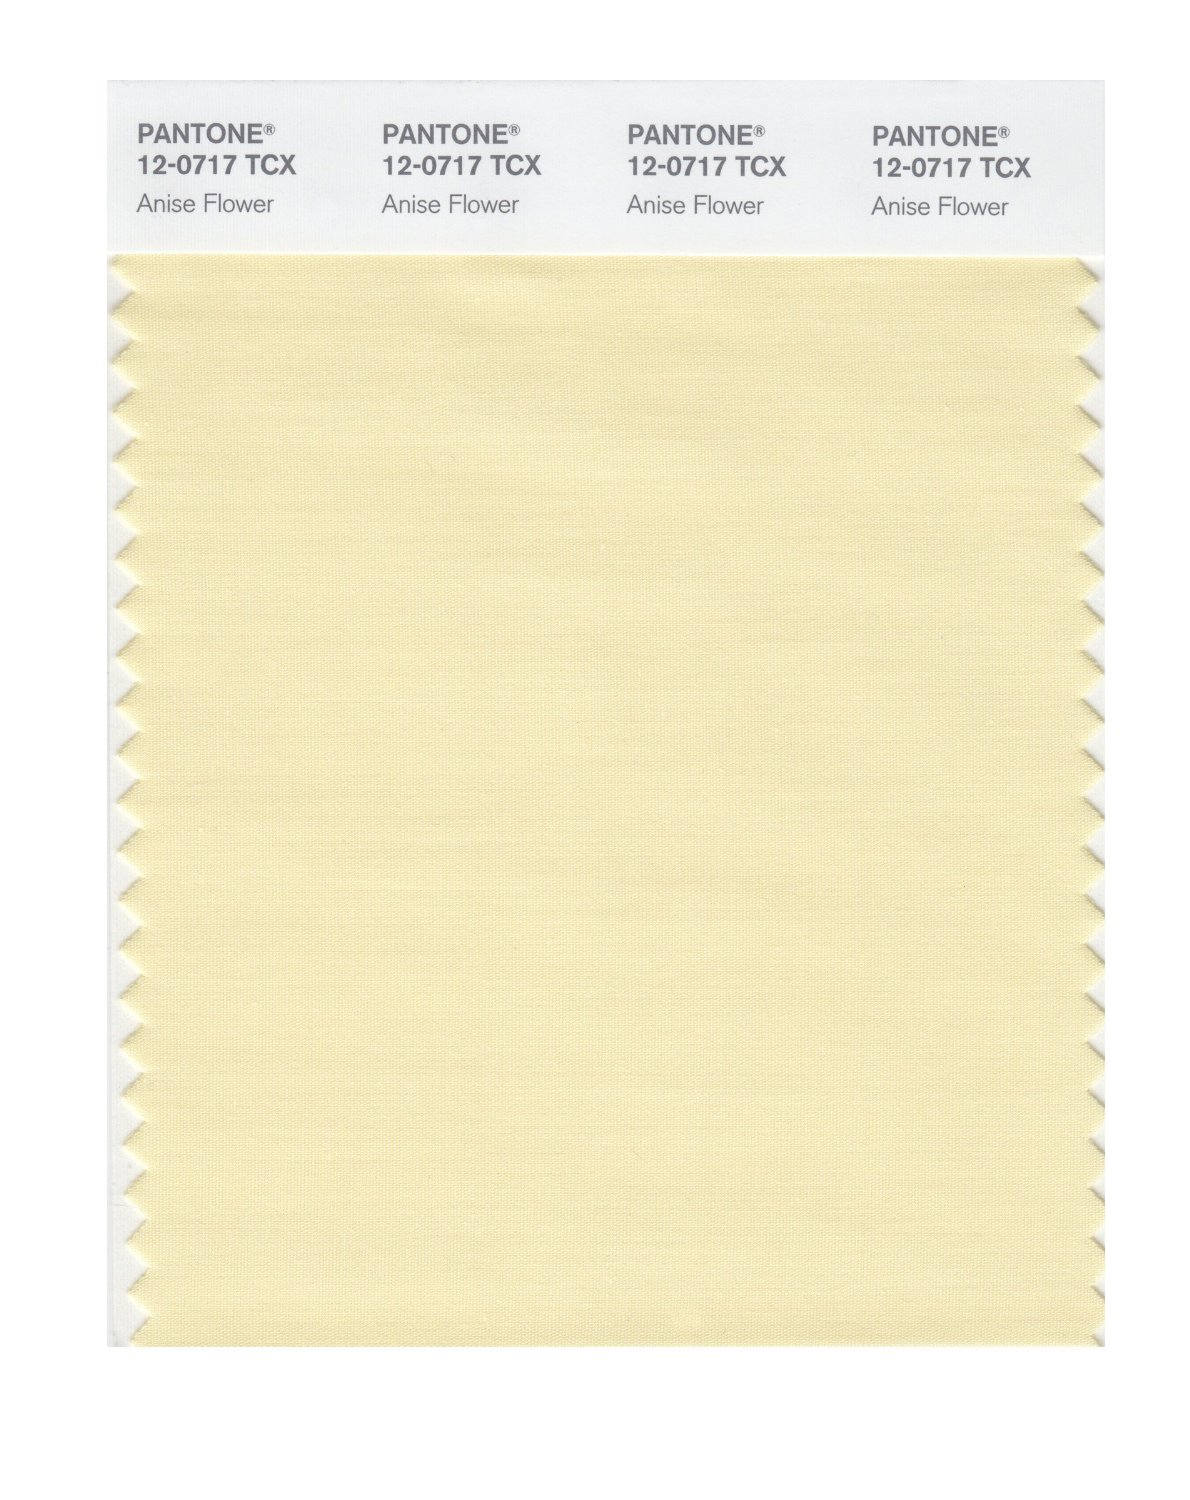 Pantone Smart Swatch 12-0717 Anise Flower